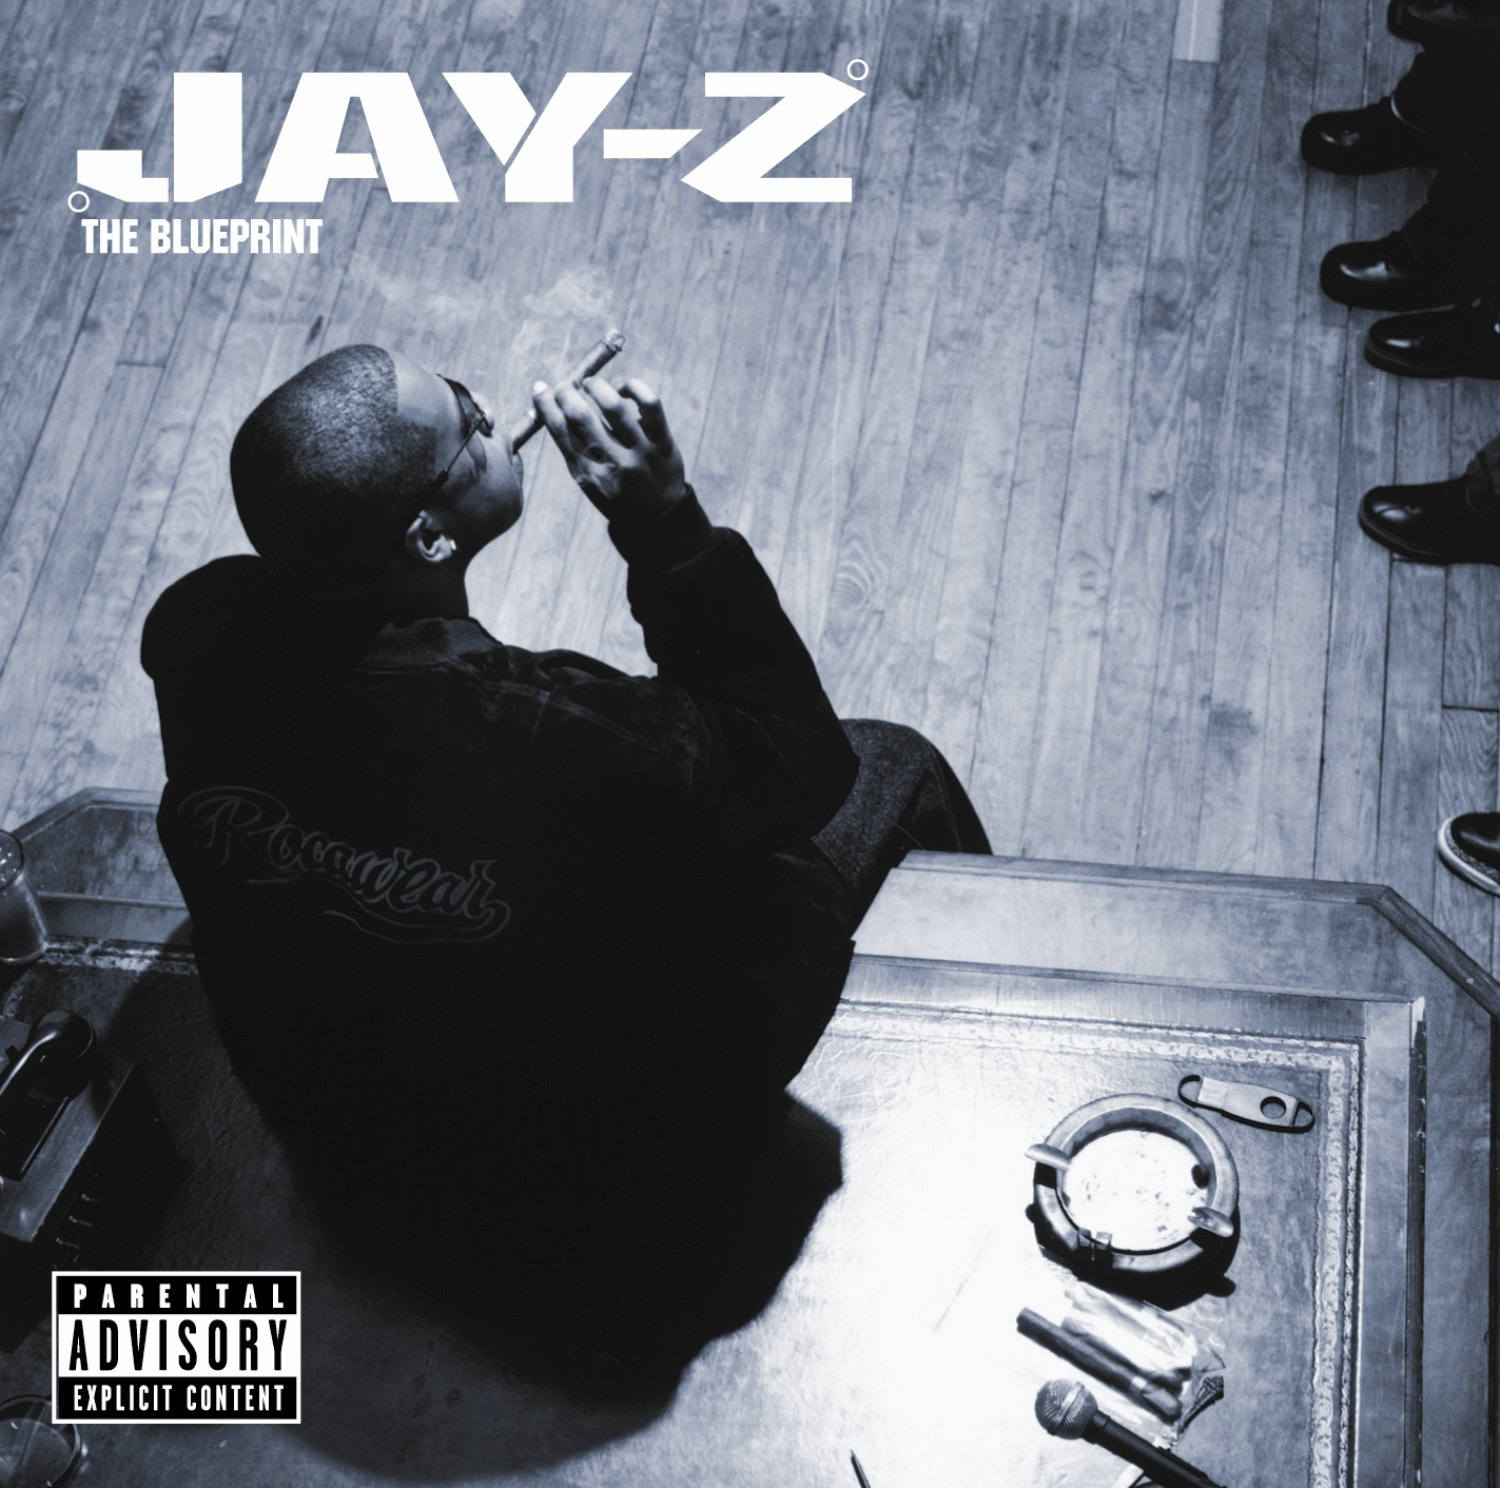 From the record crate jay z the blueprint the young folks coverthebluepr300rgb2 malvernweather Gallery